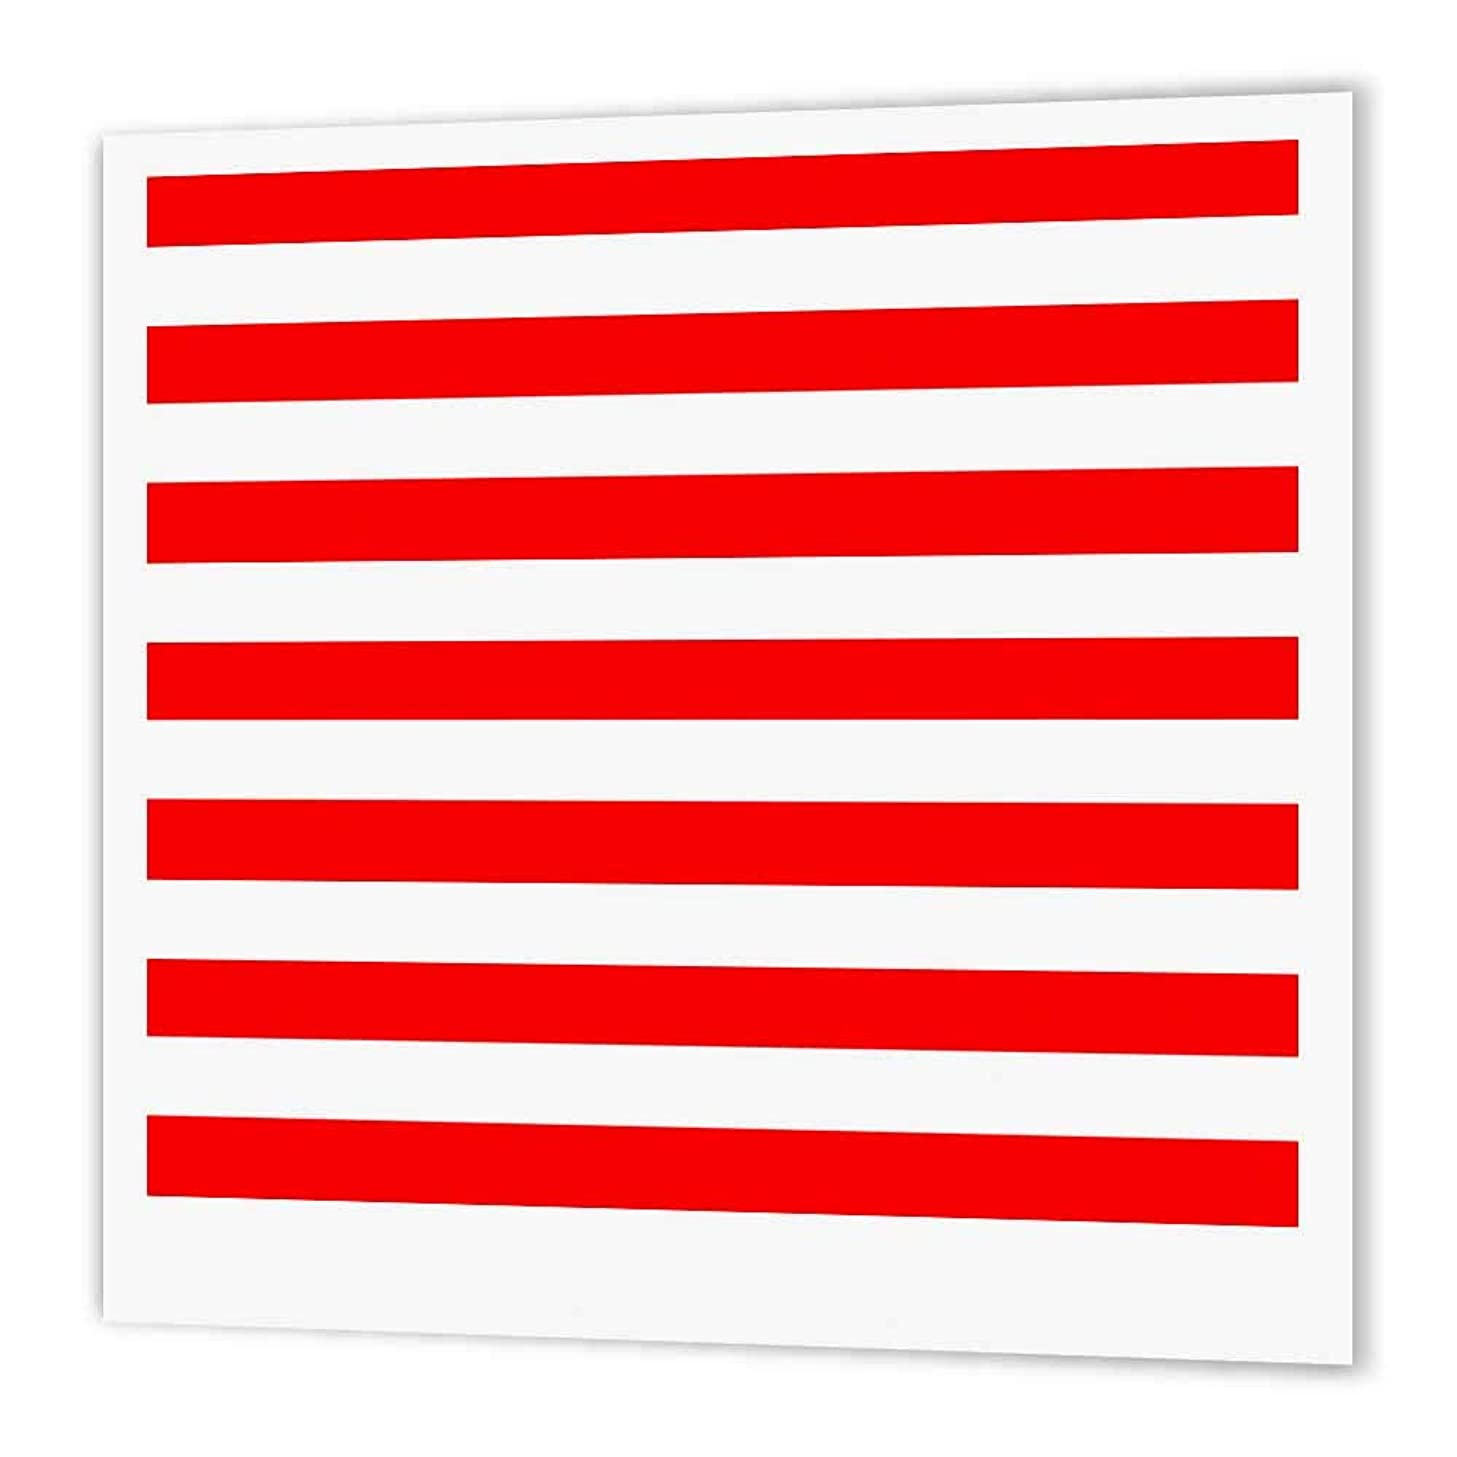 3dRose ht_24692_1 Red and White Stripes-Iron on Heat Transfer Paper for White Material, 8 by 8-Inch